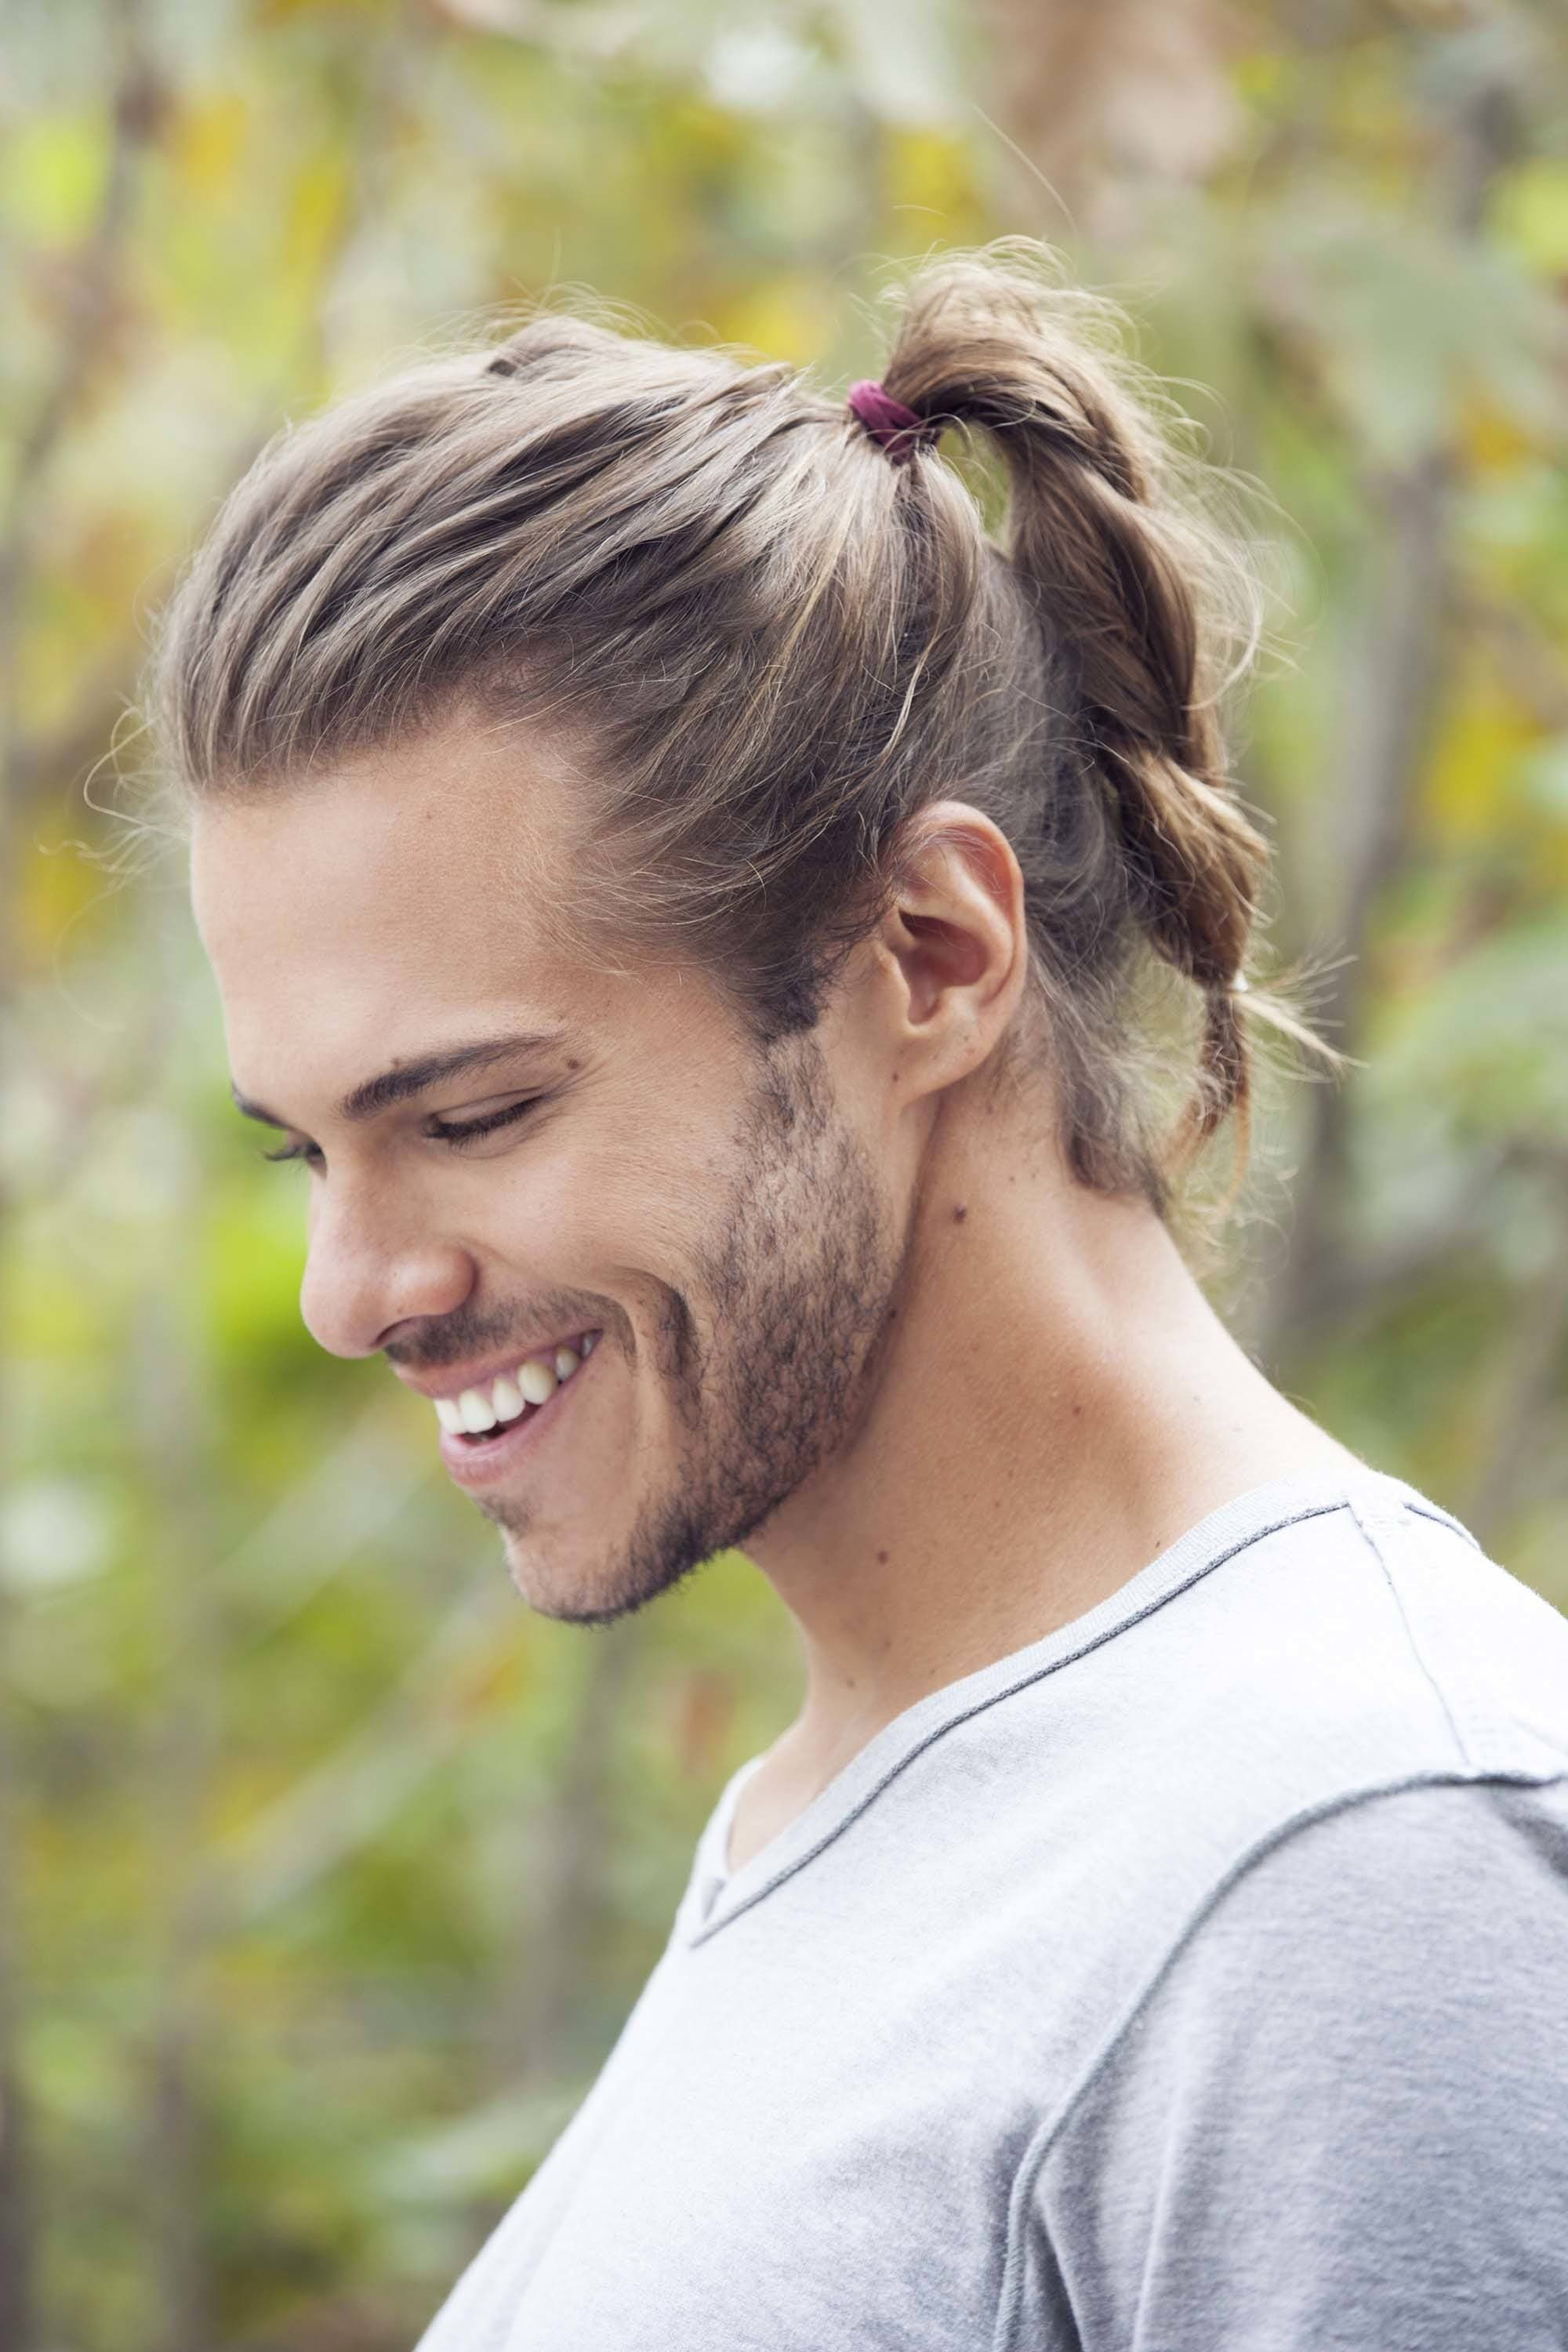 Men's grooming:: Closeup shot of a man with dark brown hair in a ponytail braid